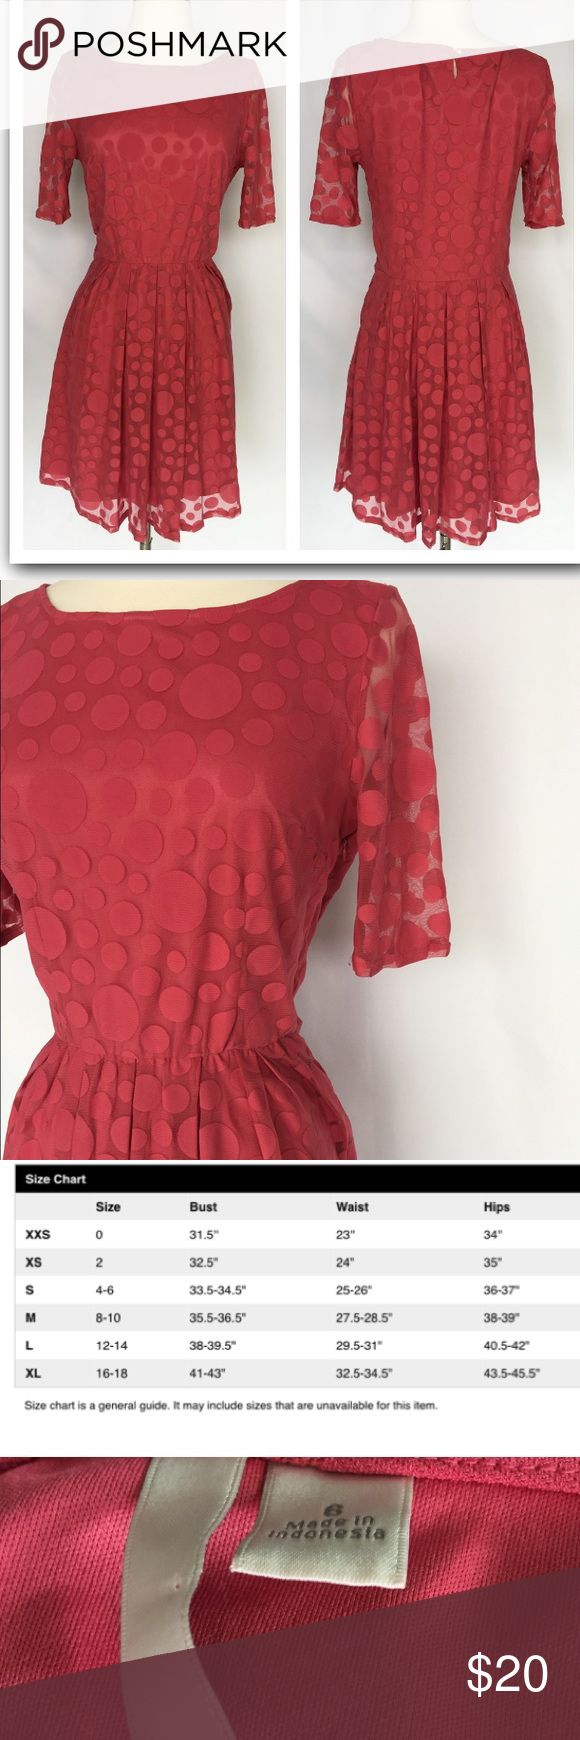 "LC Lauren Conrad coral polka dot dress size 6 Gently used LC Lauren Conrad coral polka dot dress size 6. No stains or holes. Please see last picture- the rubber band closure in the back has come undone, but dress is in otherwise good condition. Material polyester and nylon. Dress is fully lined with zipper closure. Length is 35"". LC Lauren Conrad Dresses Long Sleeve"